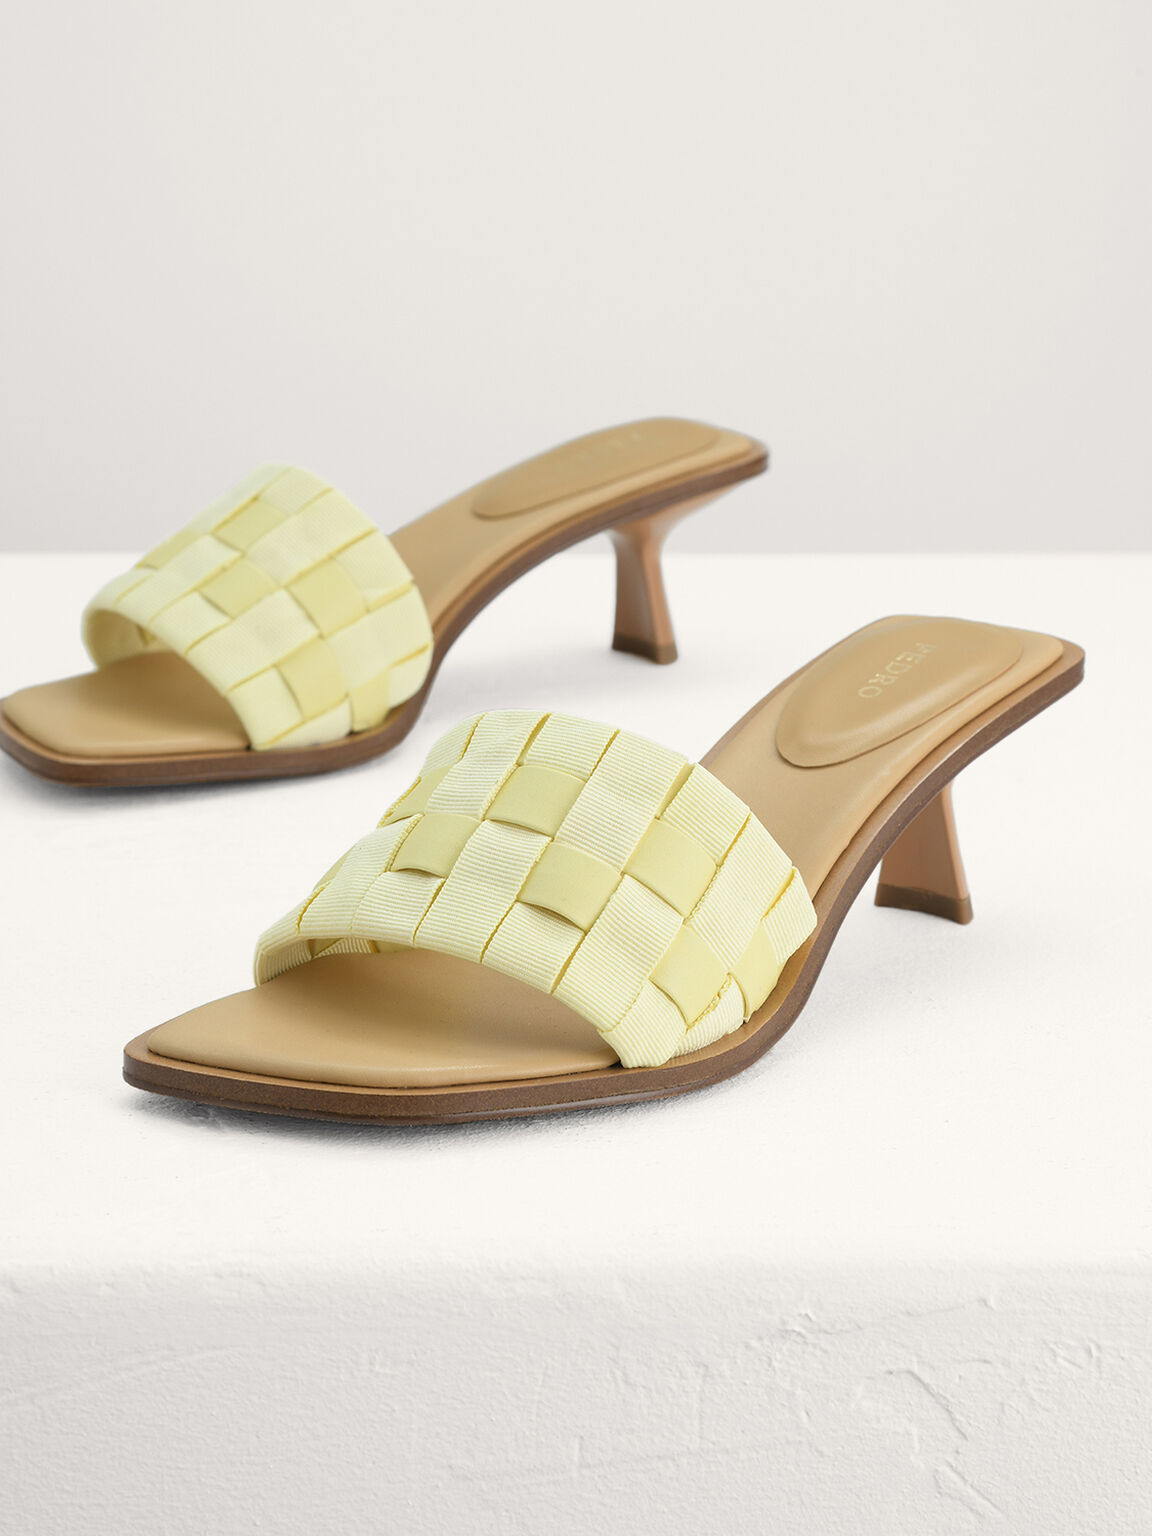 Braided Heeled Sandals, Yellow, hi-res